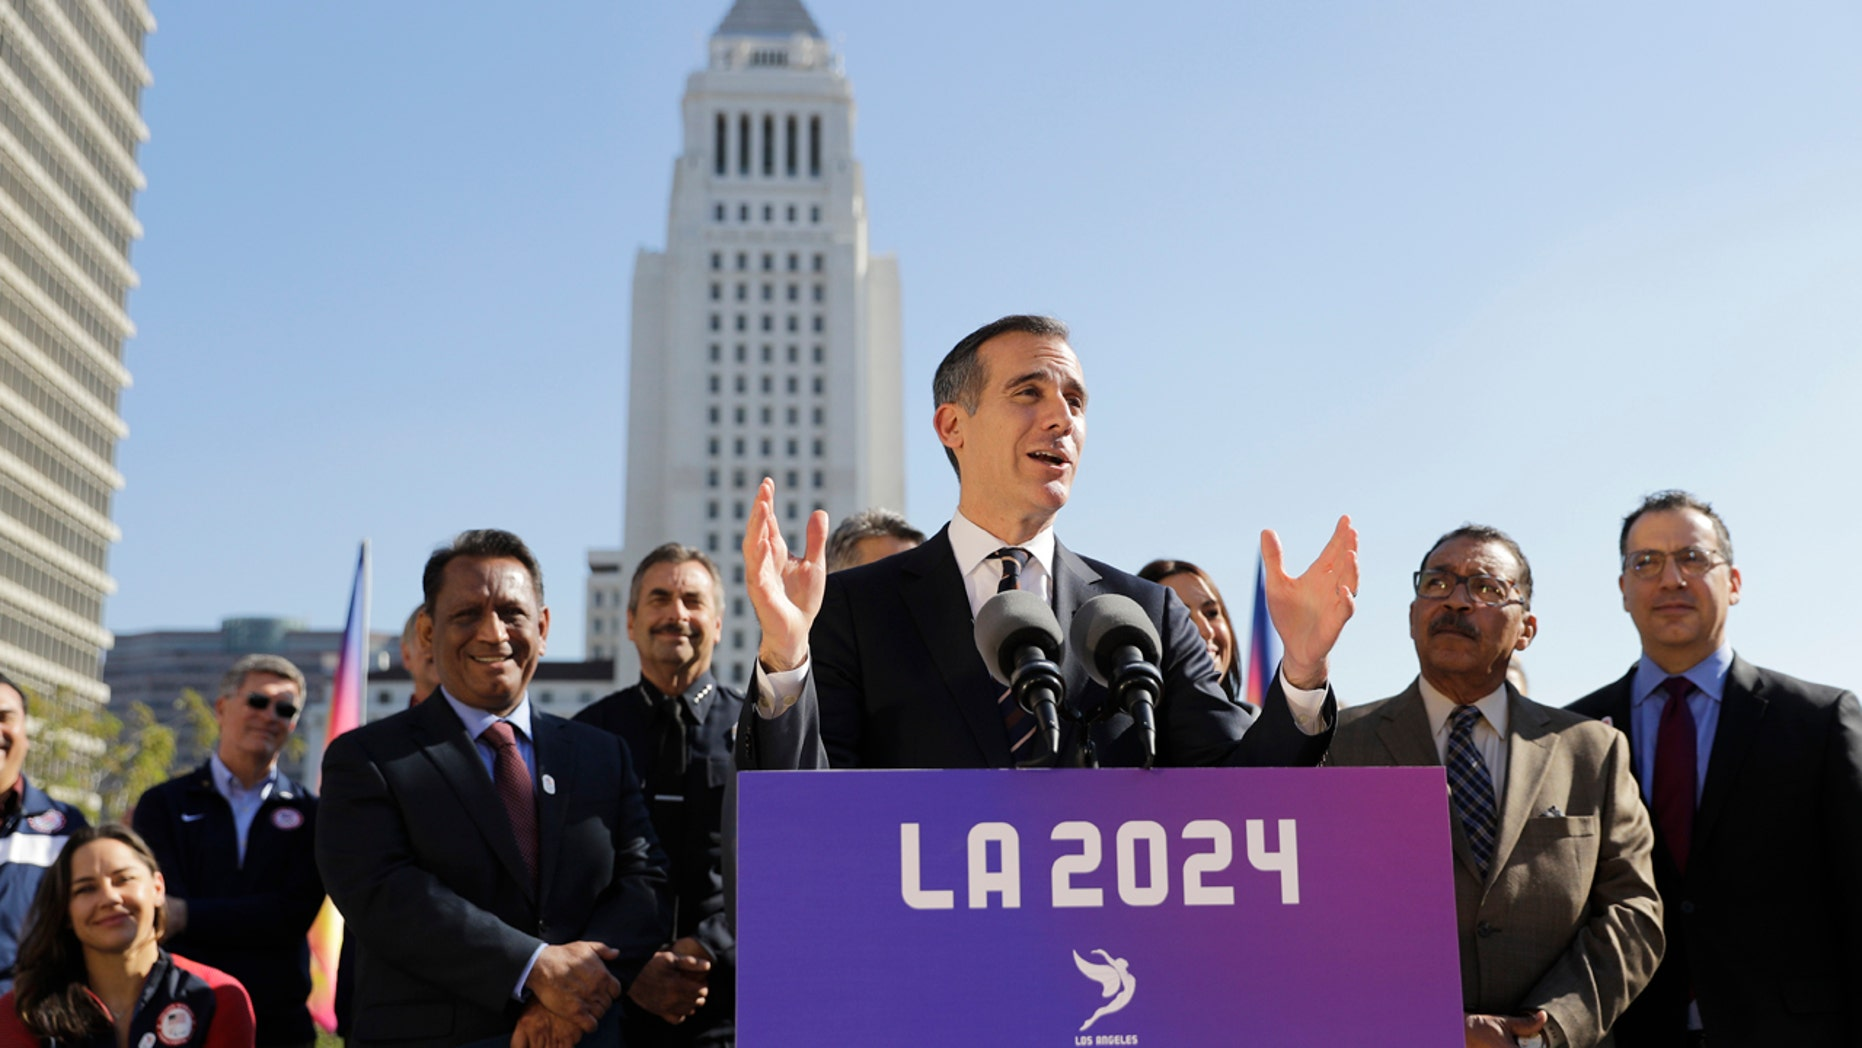 Los Angeles Mayor Eric Garcetti, center, speaks during a news conference Wednesday, Jan. 25, 2017, in Los Angeles.